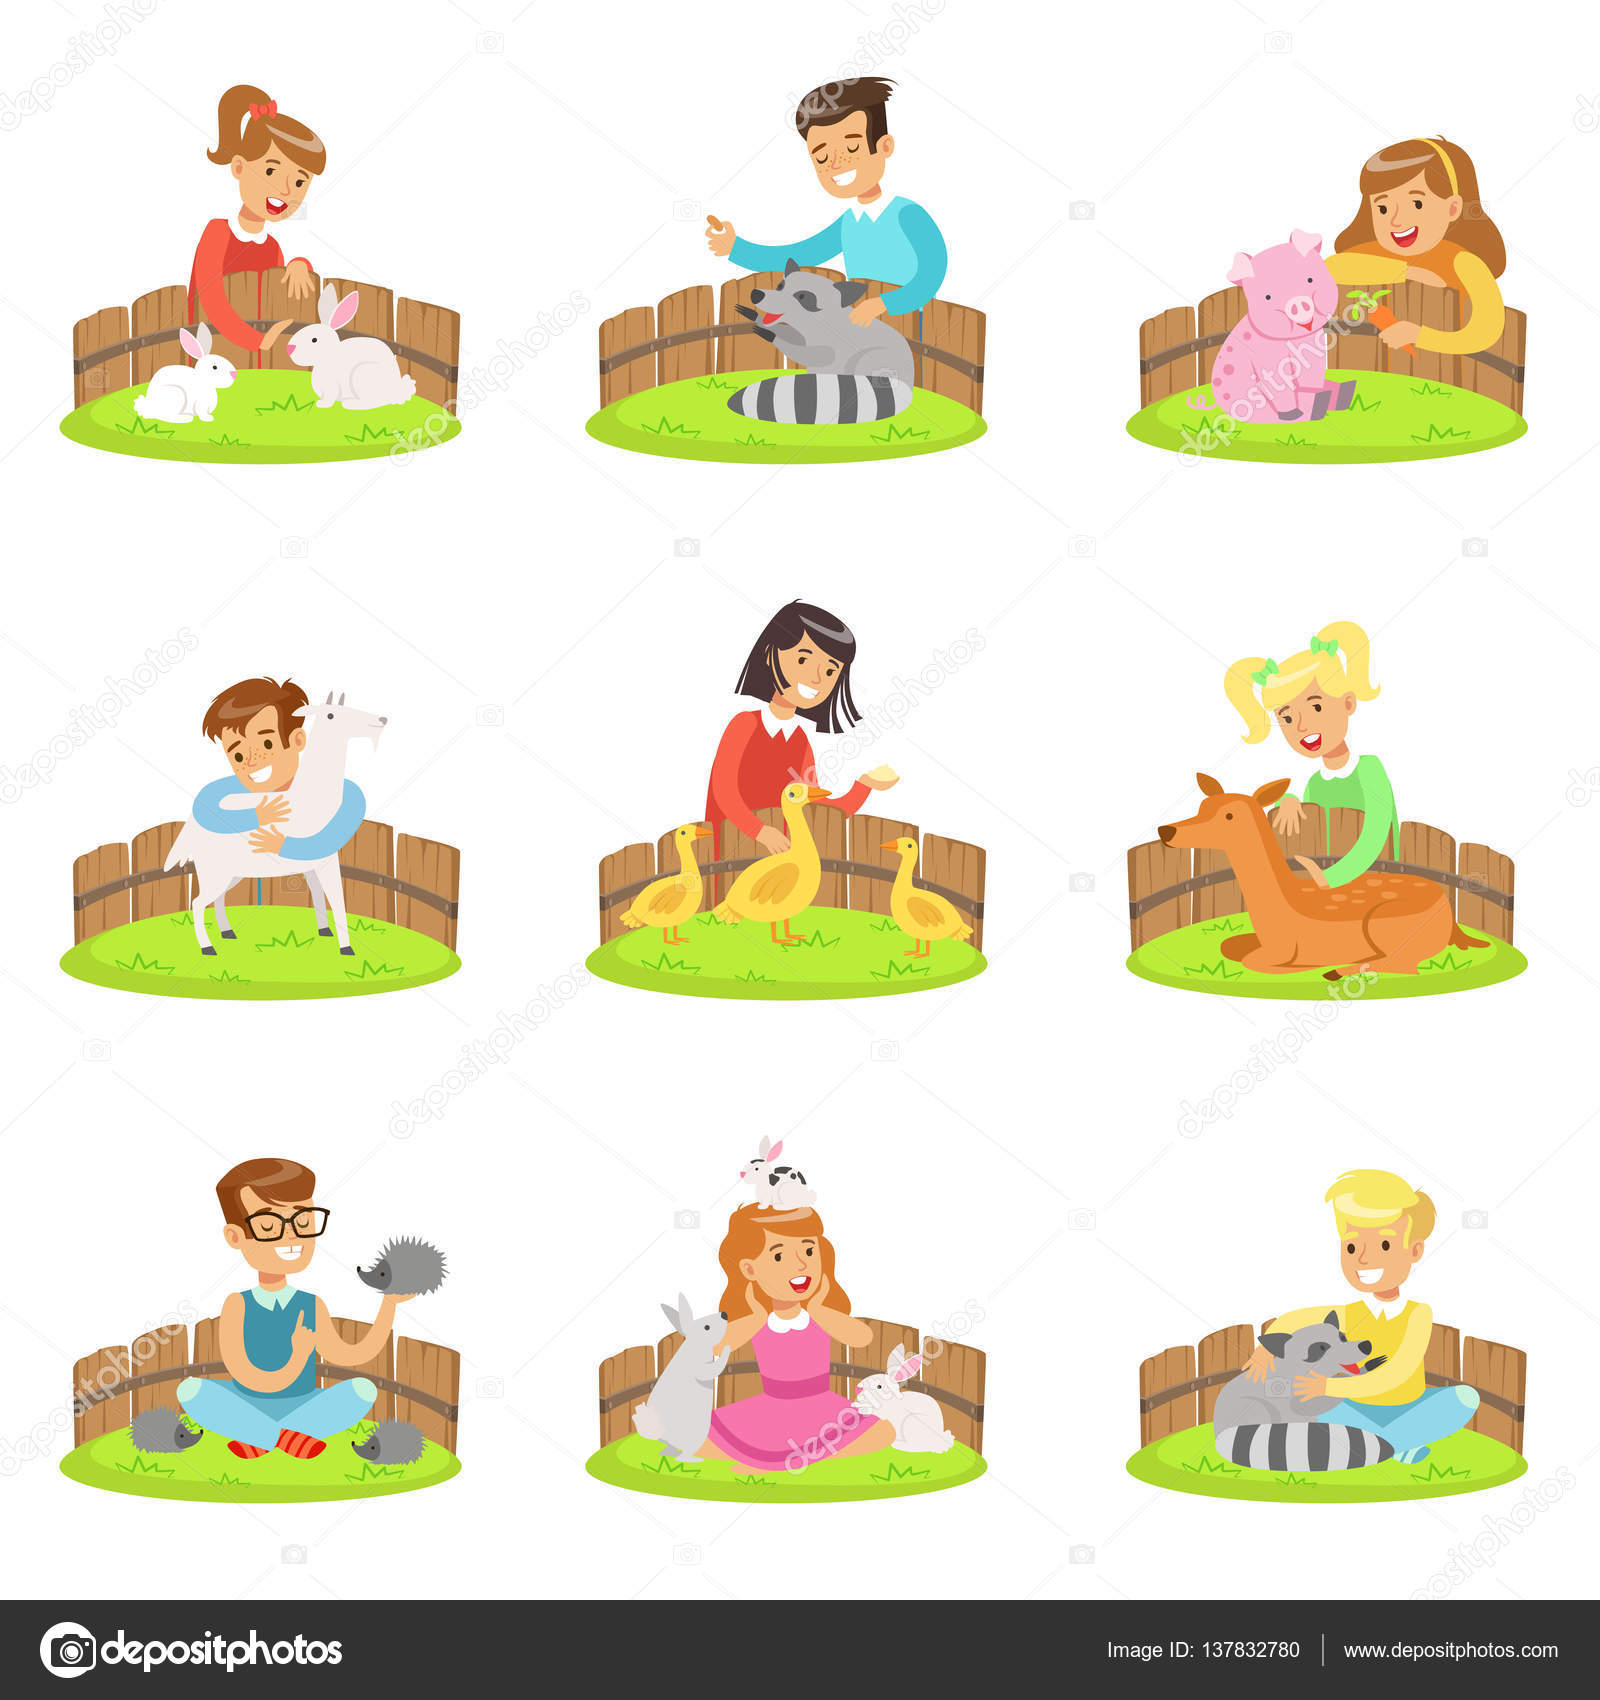 Zoo clipart small animal Illustration Children Petting With Set